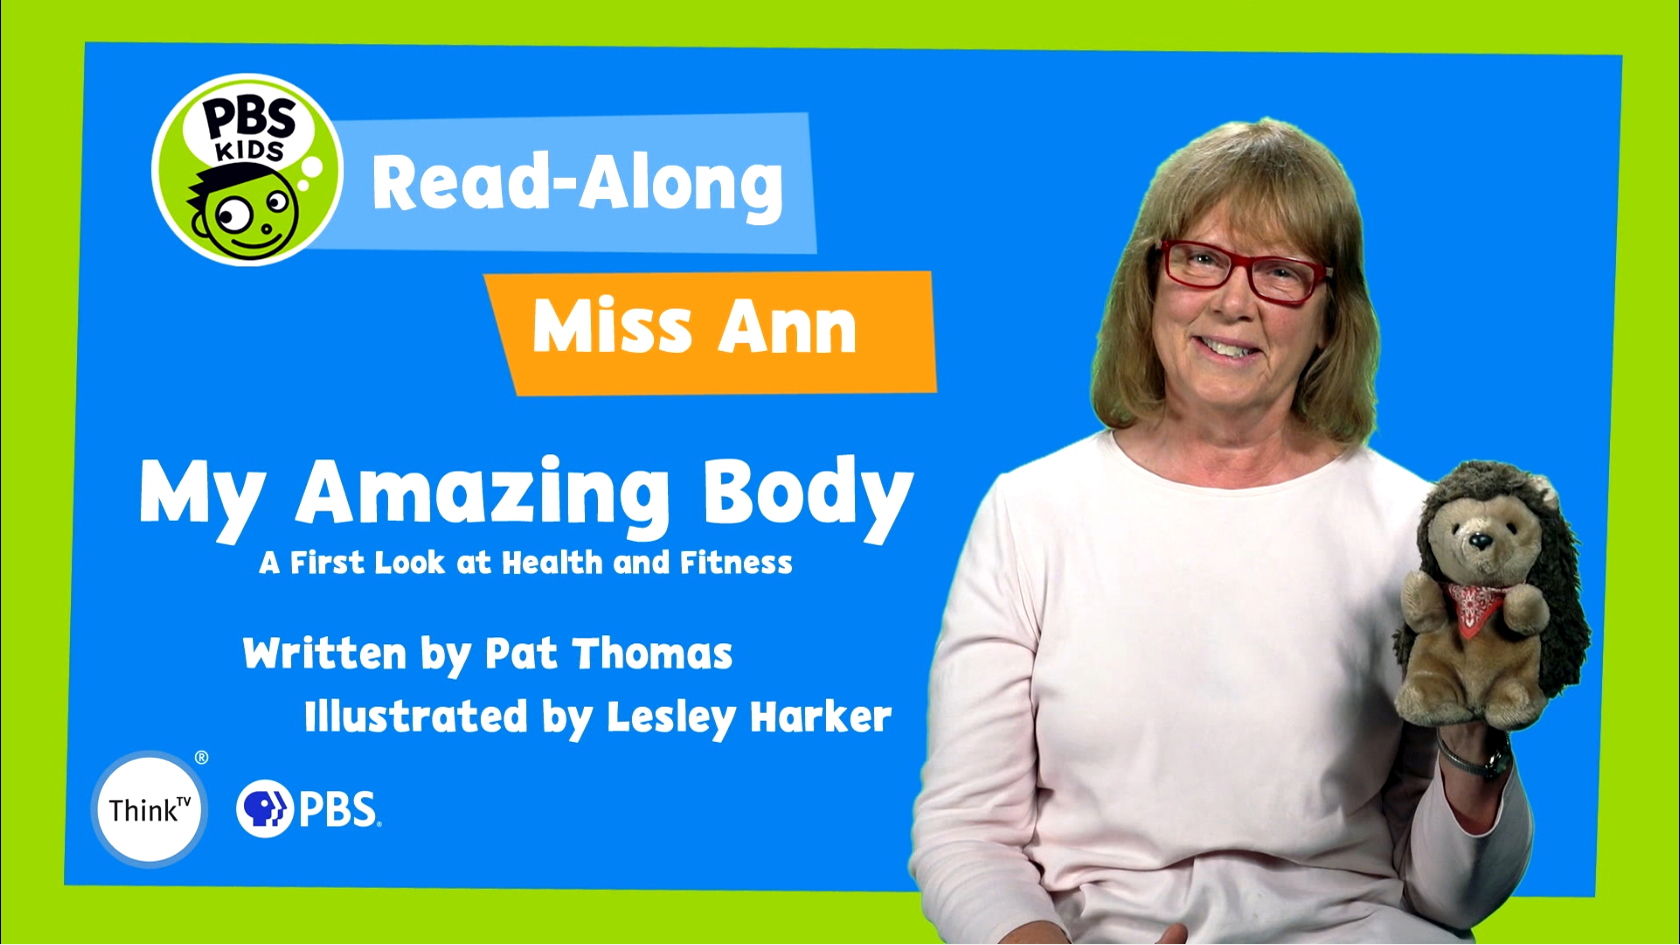 Read-Along with Miss Ann: My Amazing Body